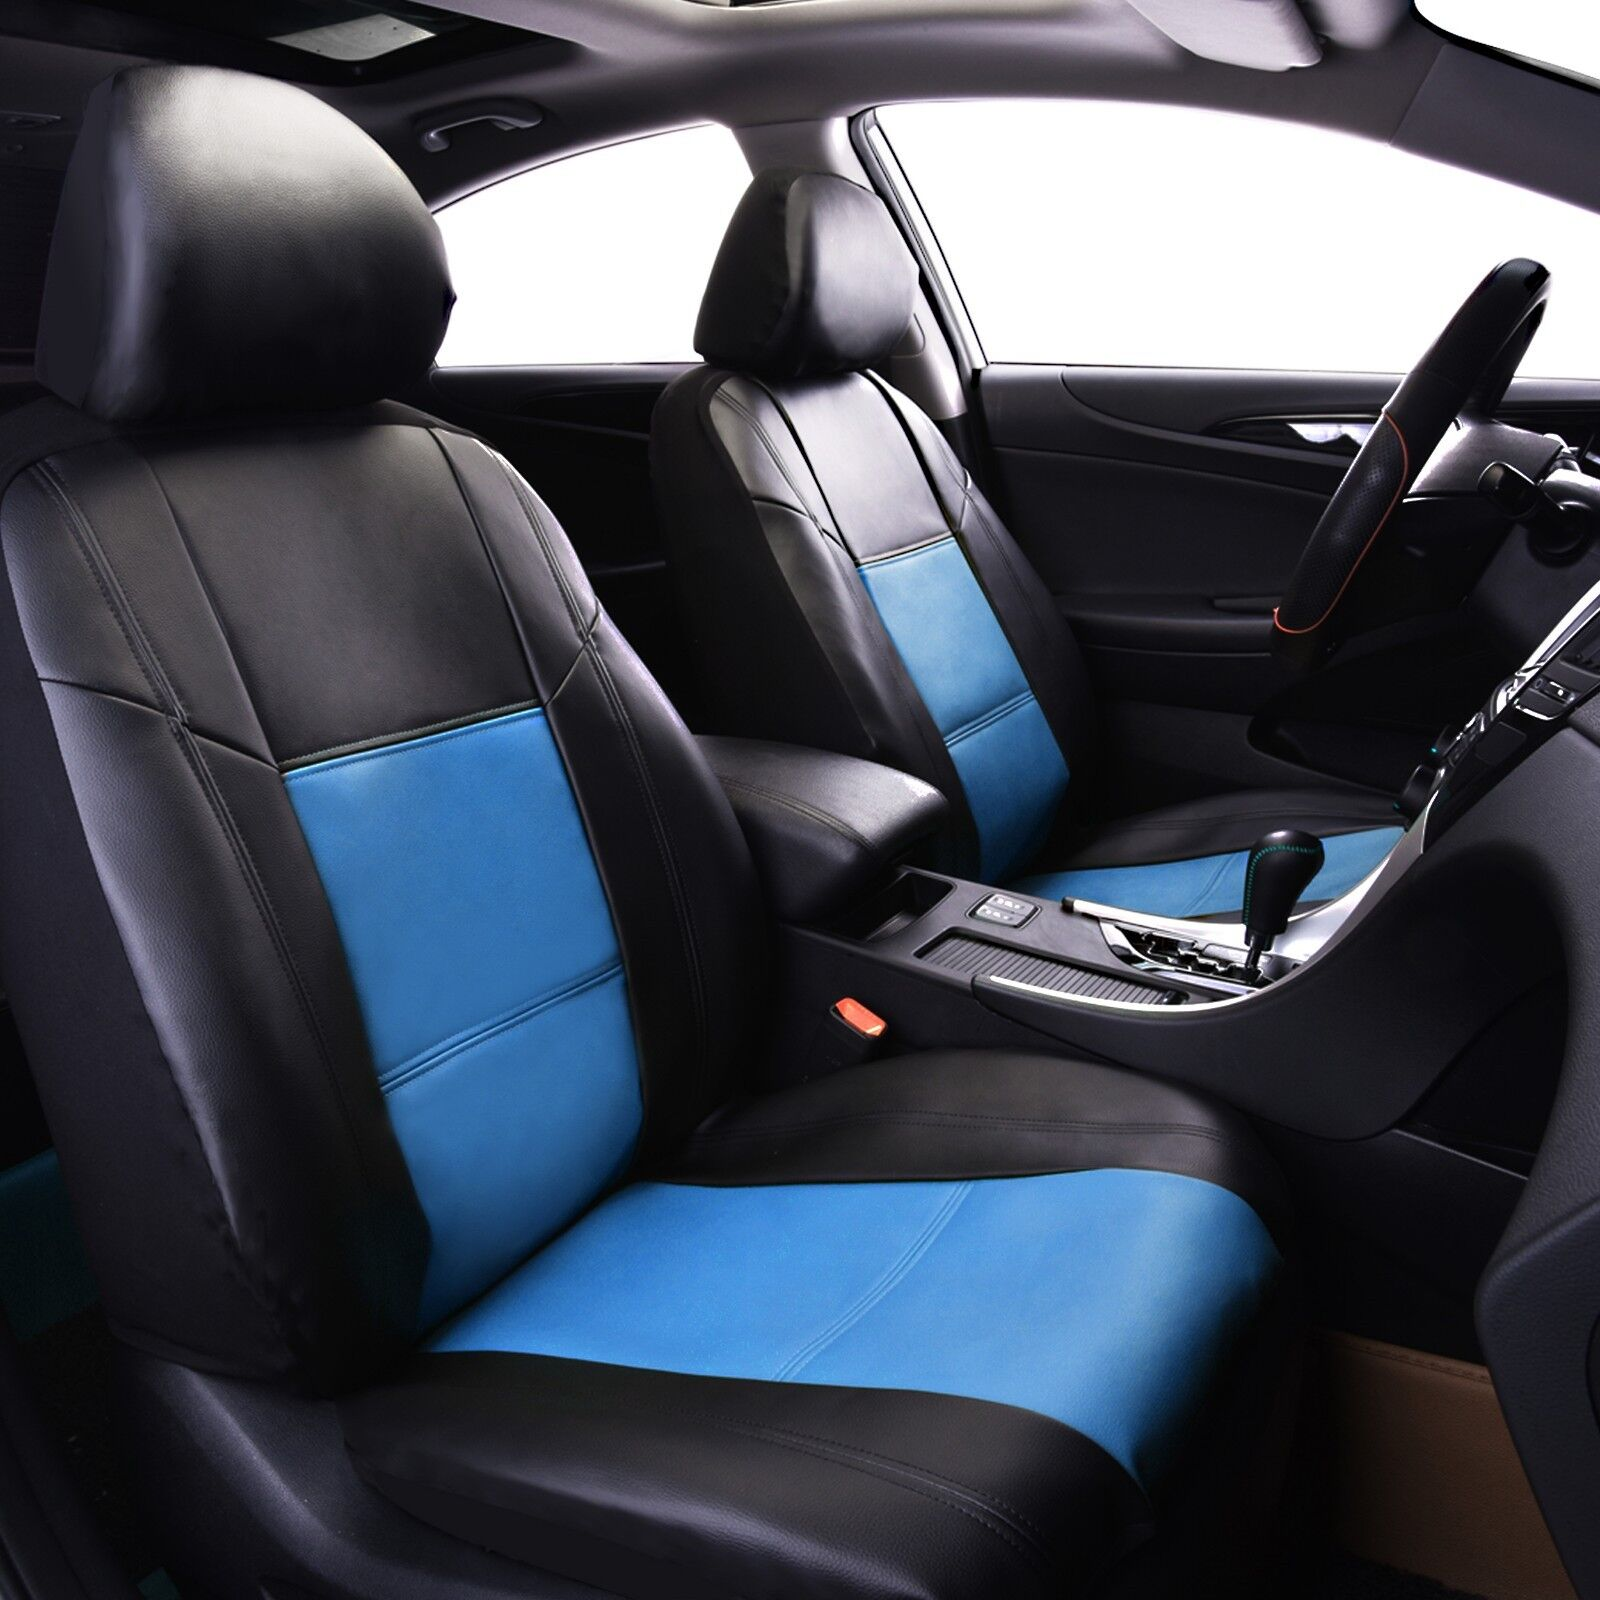 Universal PU Leather Two Front Black Blue Car Seat Cover Set